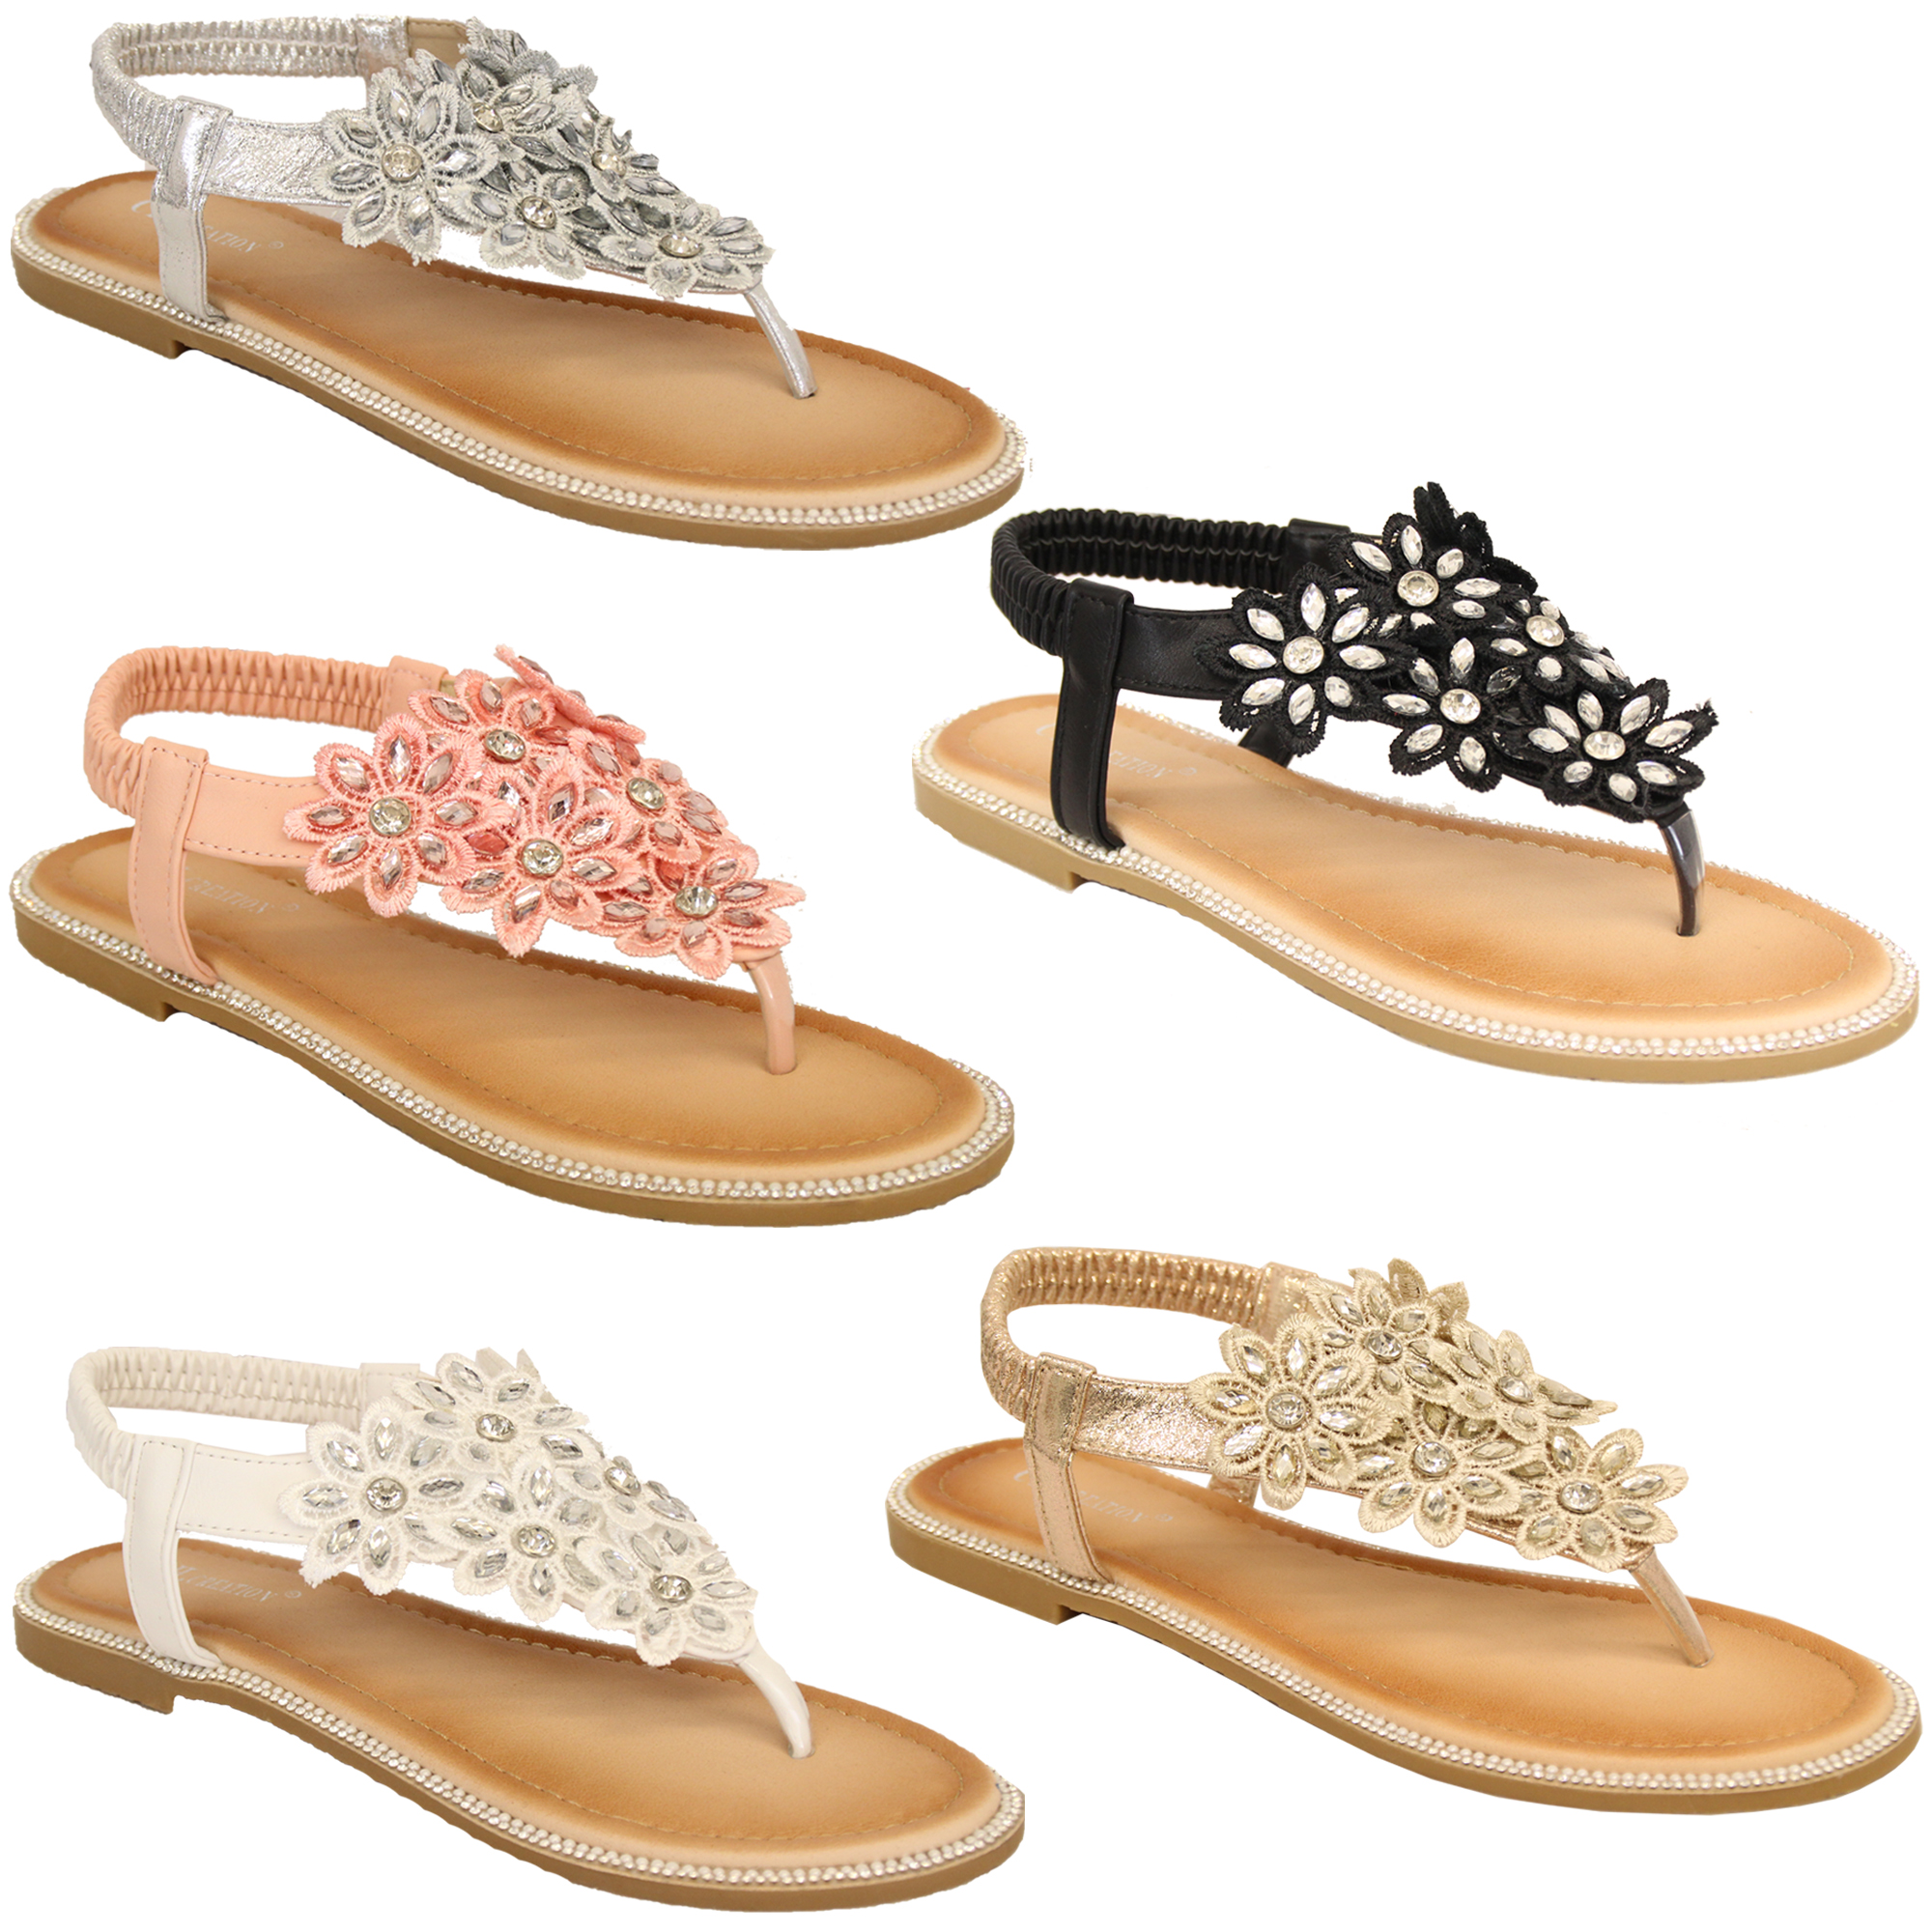 10acfdf2825 Details about Ladies Flat Sandals Womens Diamante Sling Back Toe Post Flowers  Shoes Summer New